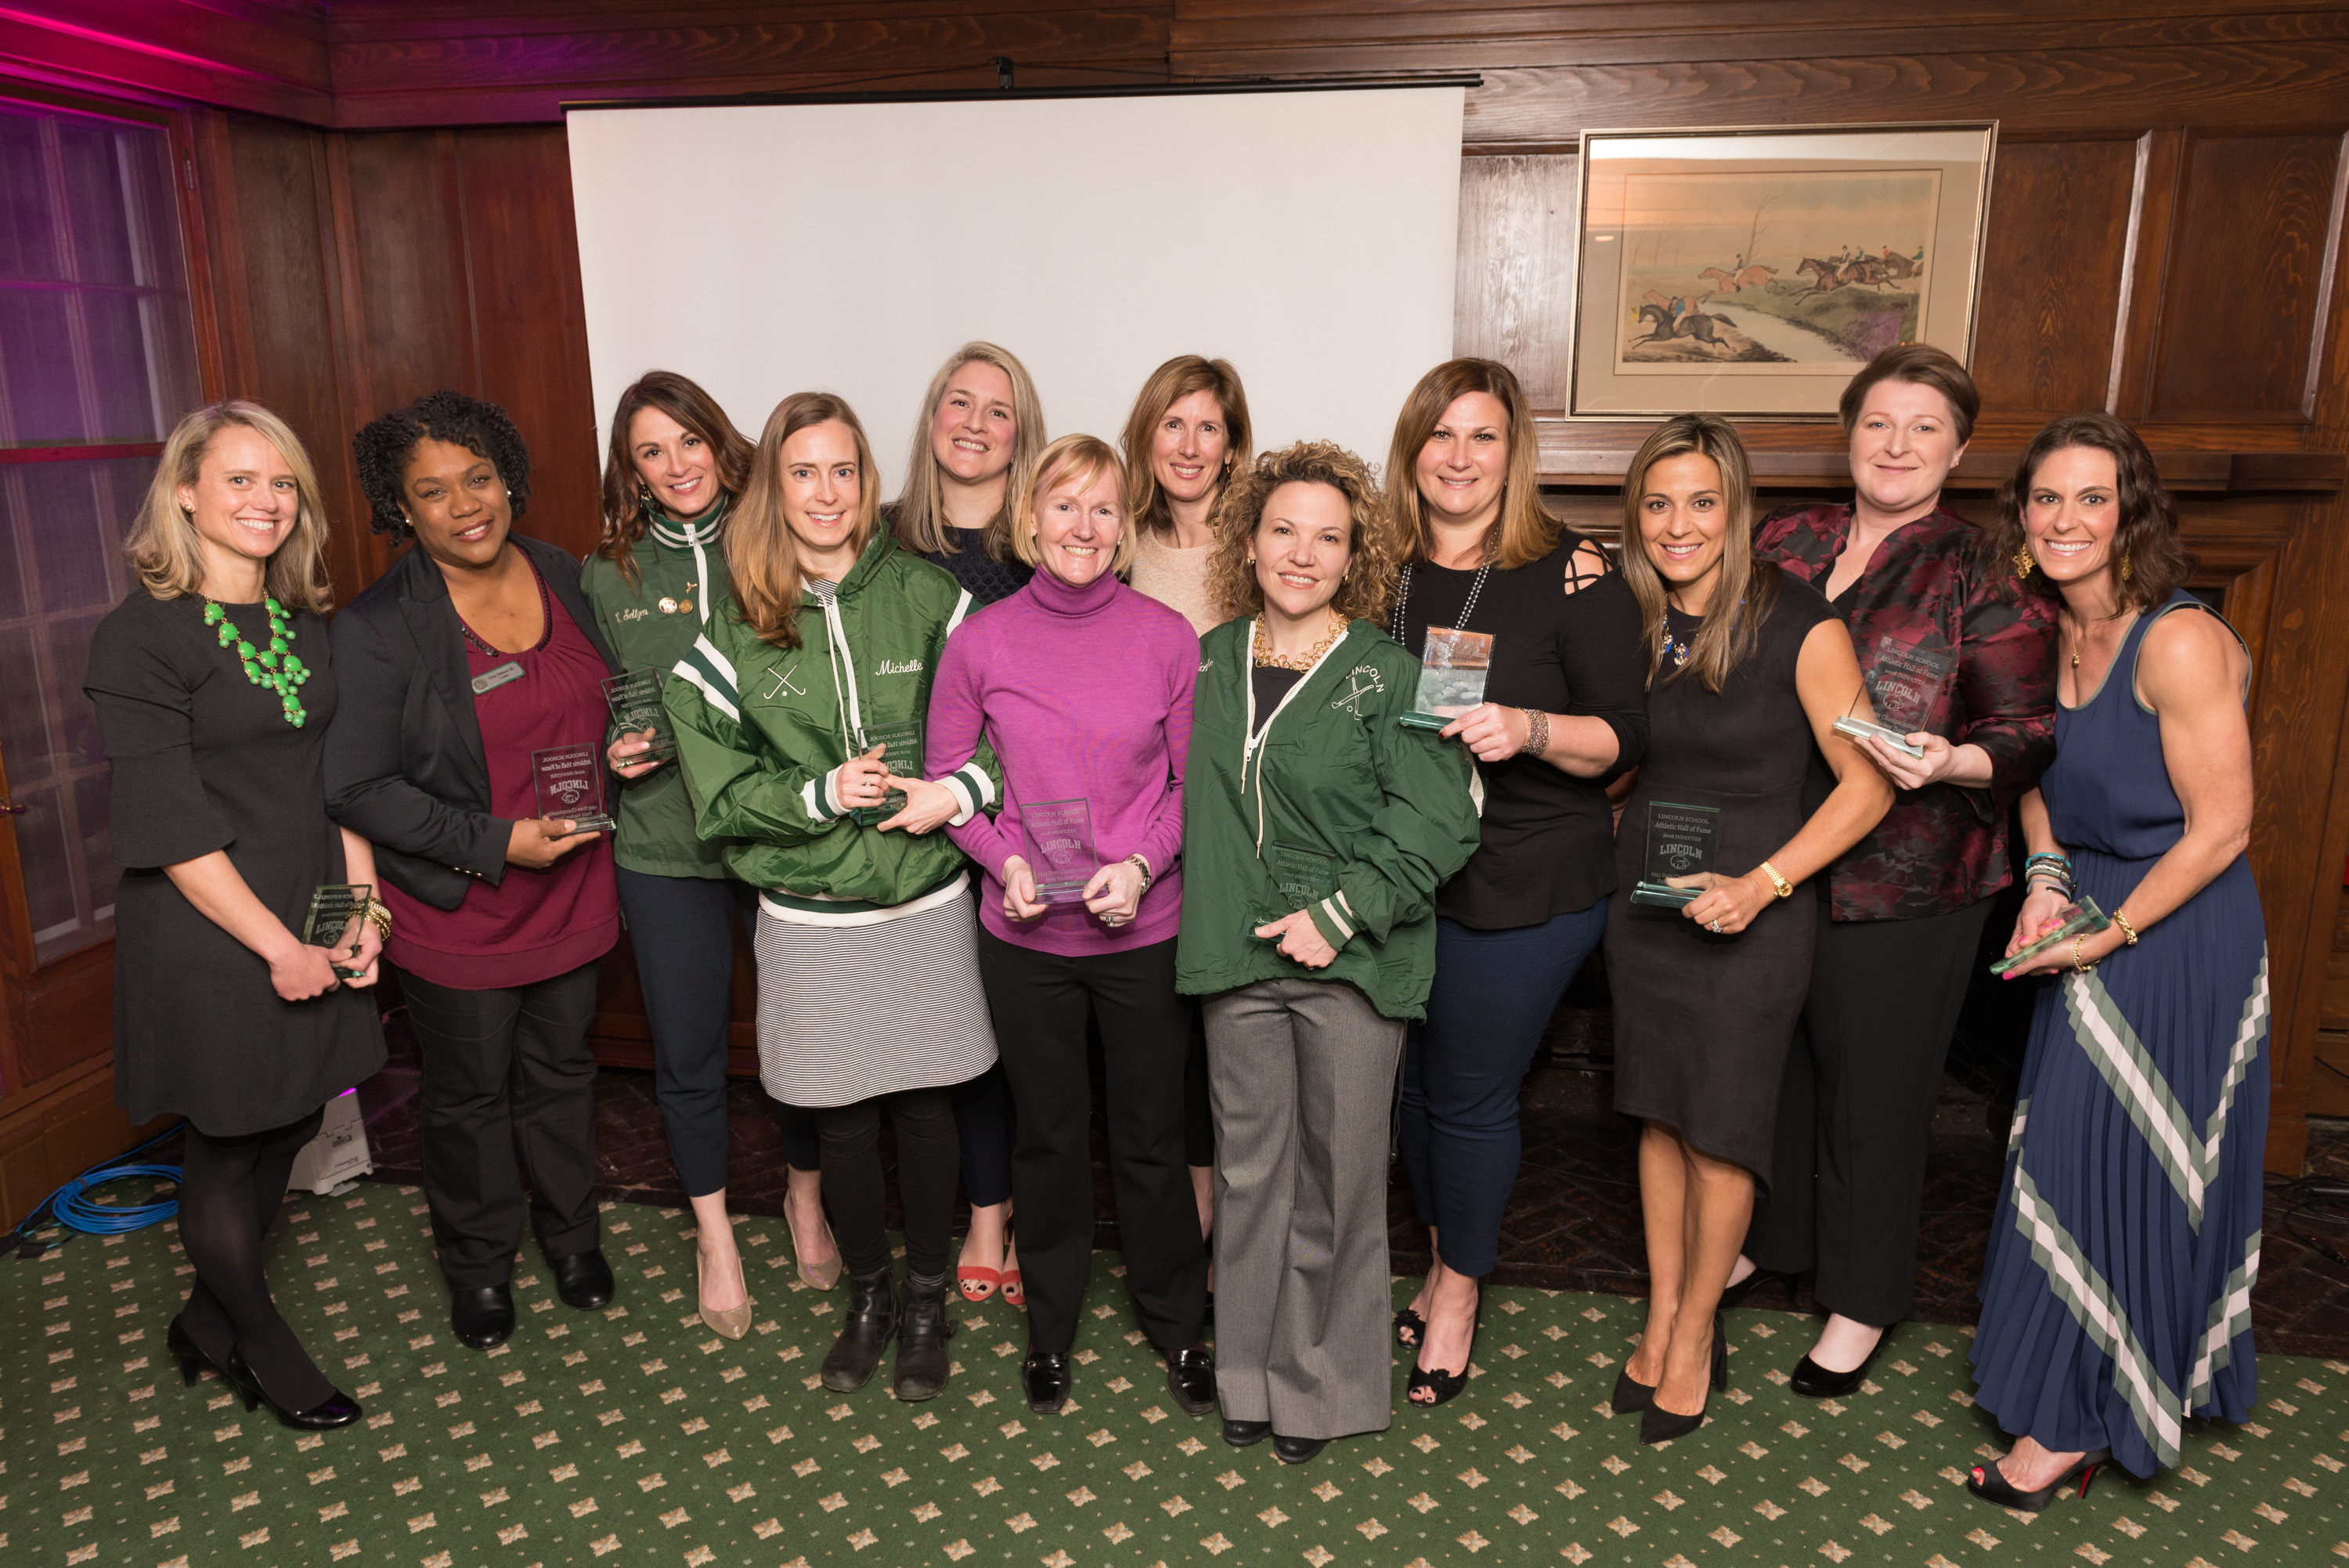 #LikeaGirl Alumnae and Supporters Inducted into the Lincoln School Athletic Hall of Fame